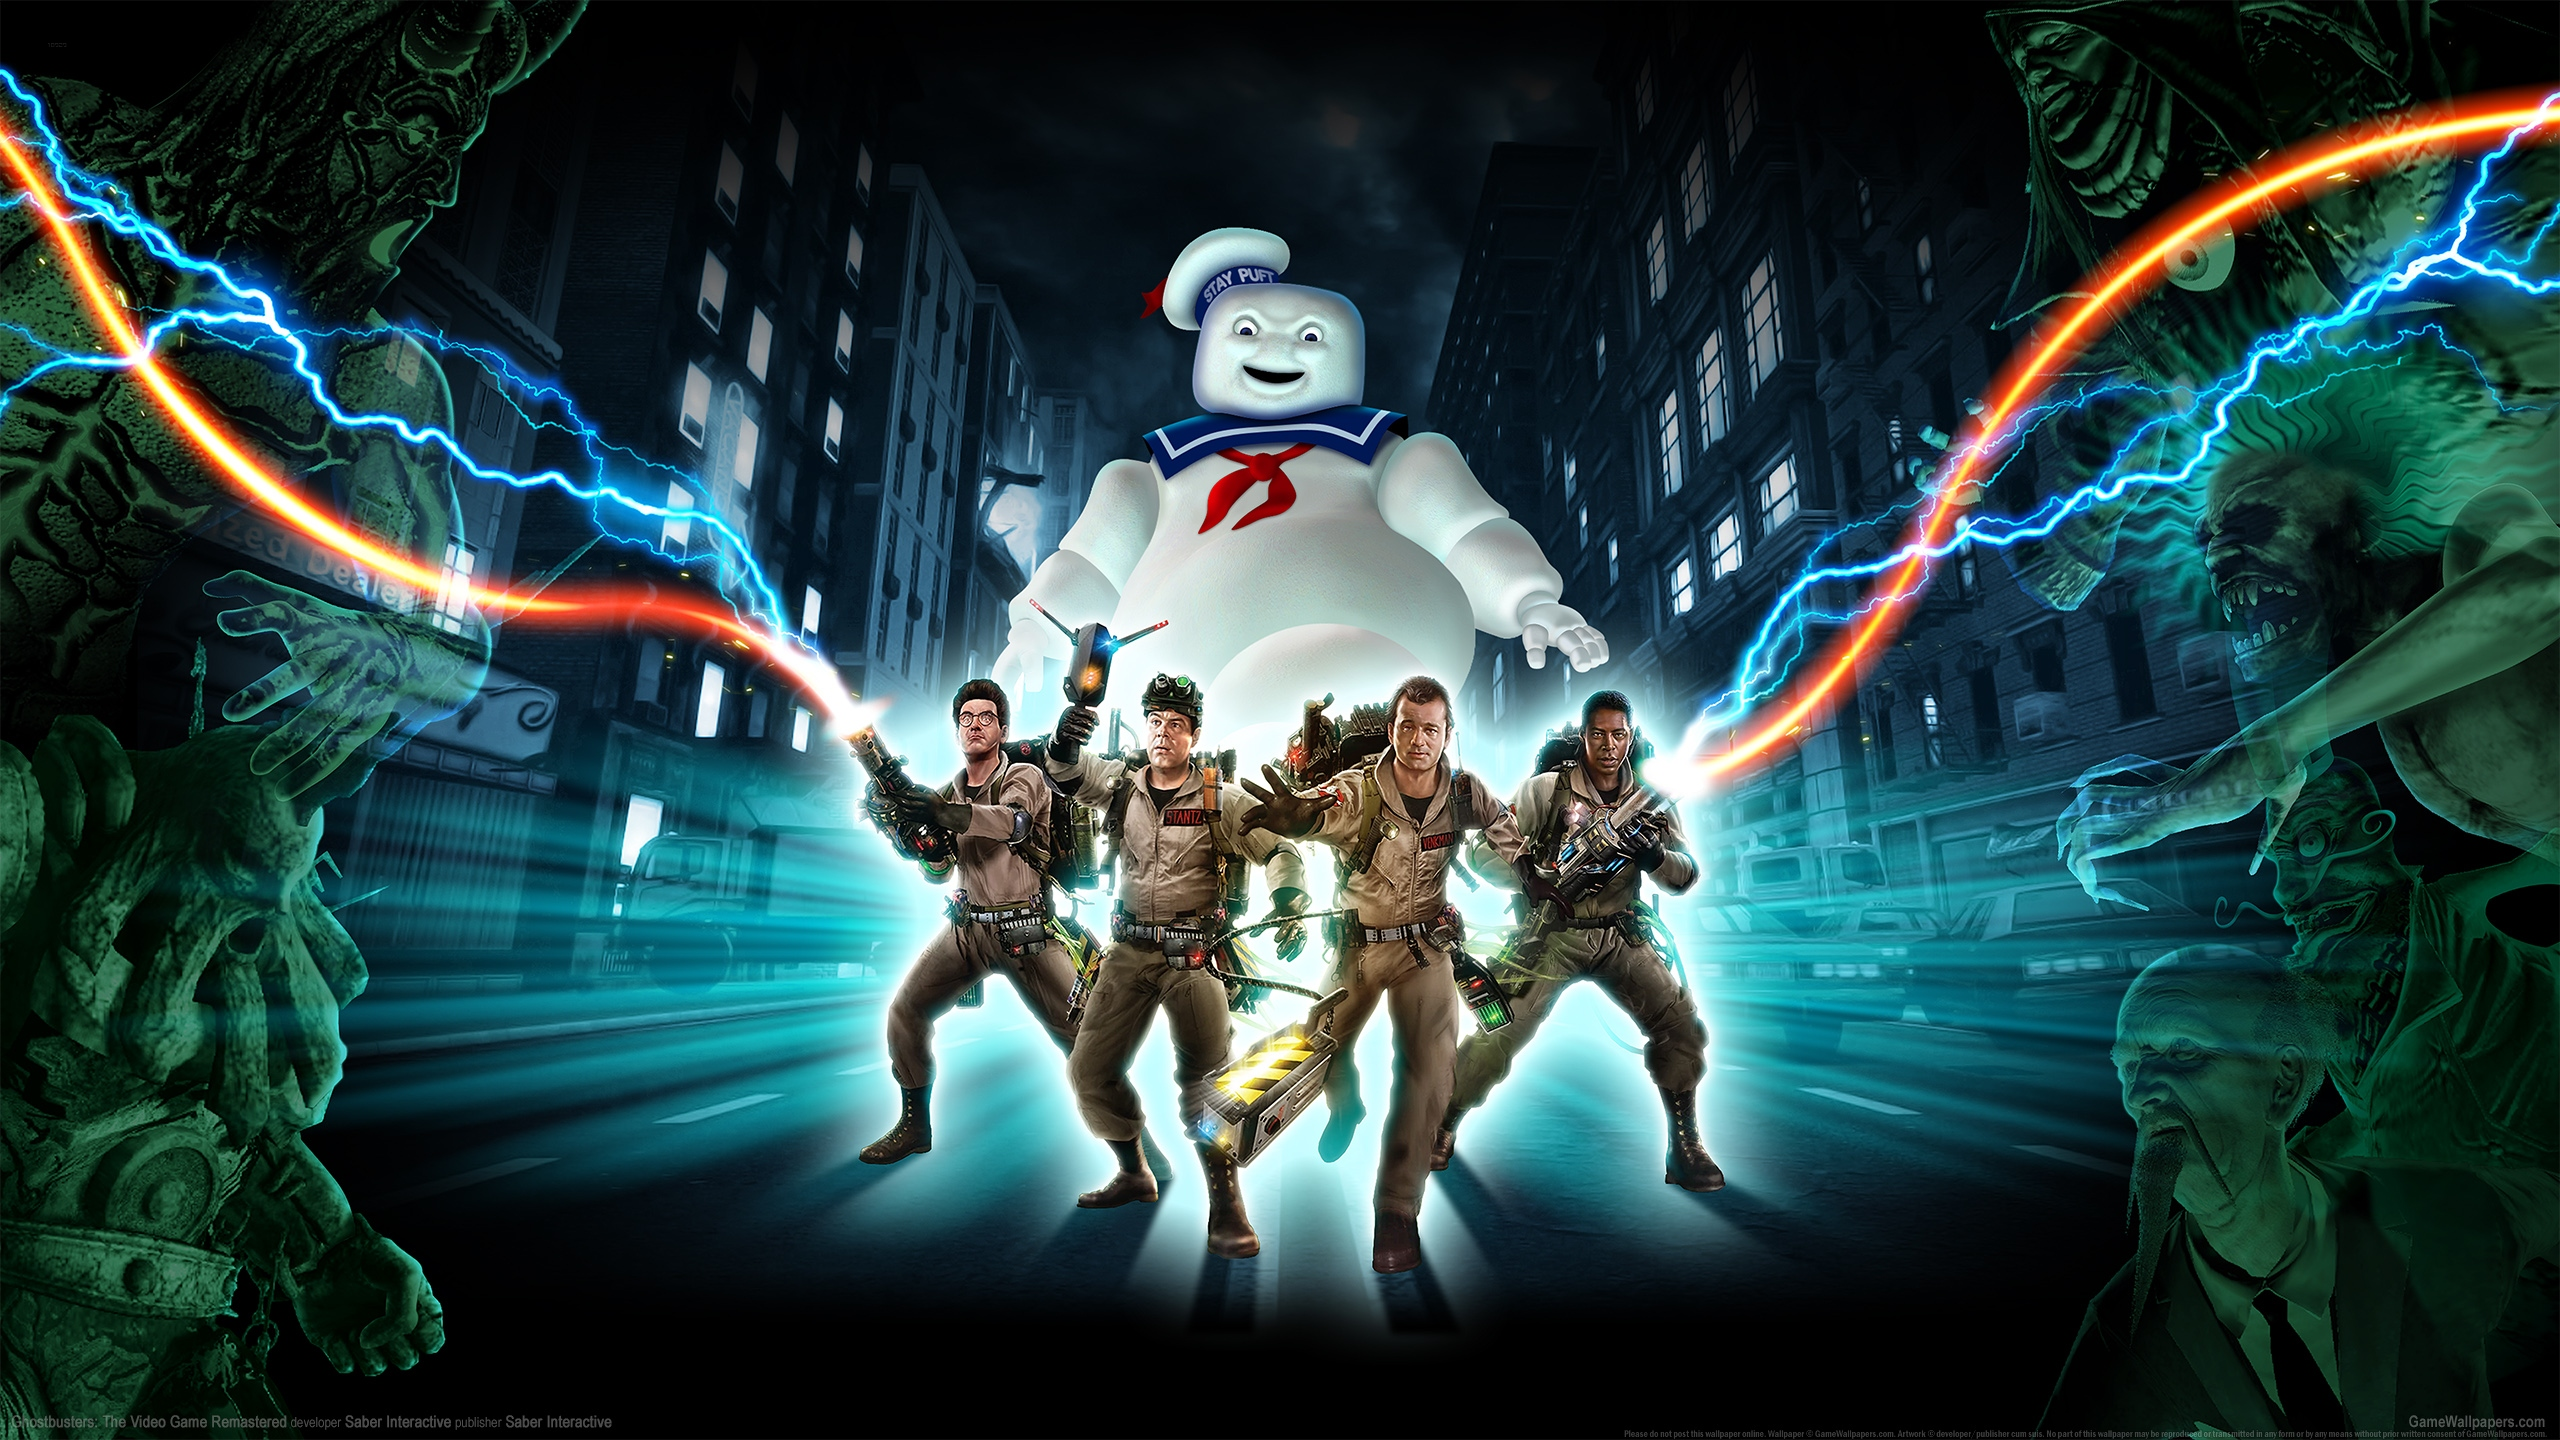 Ghostbusters: The Video Game Remastered 2560x1440 Hintergrundbild 01